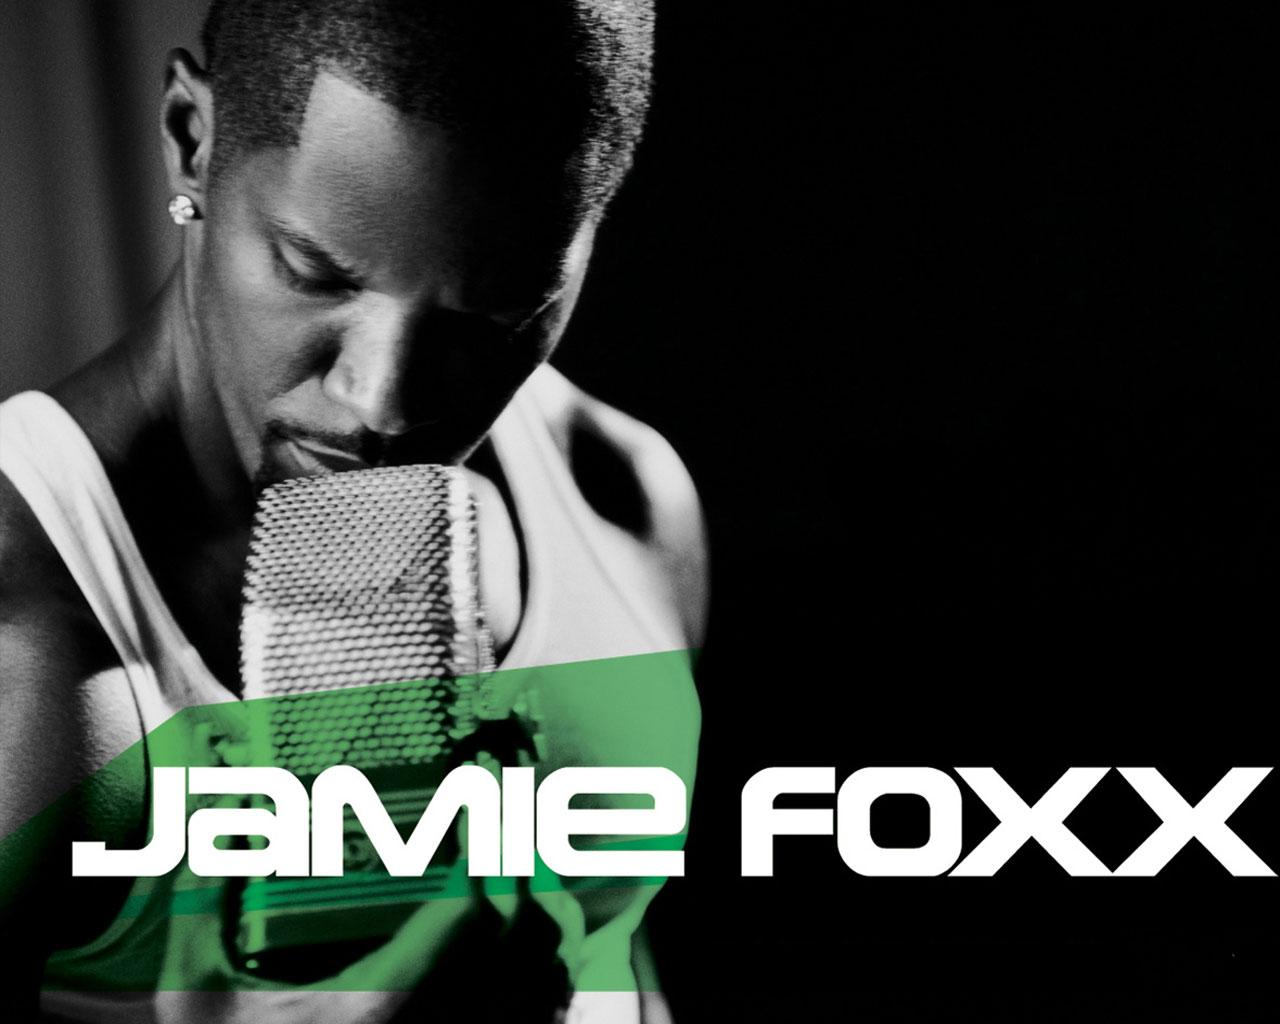 Jamie Foxx Wallpaper #3 1280 x 1024